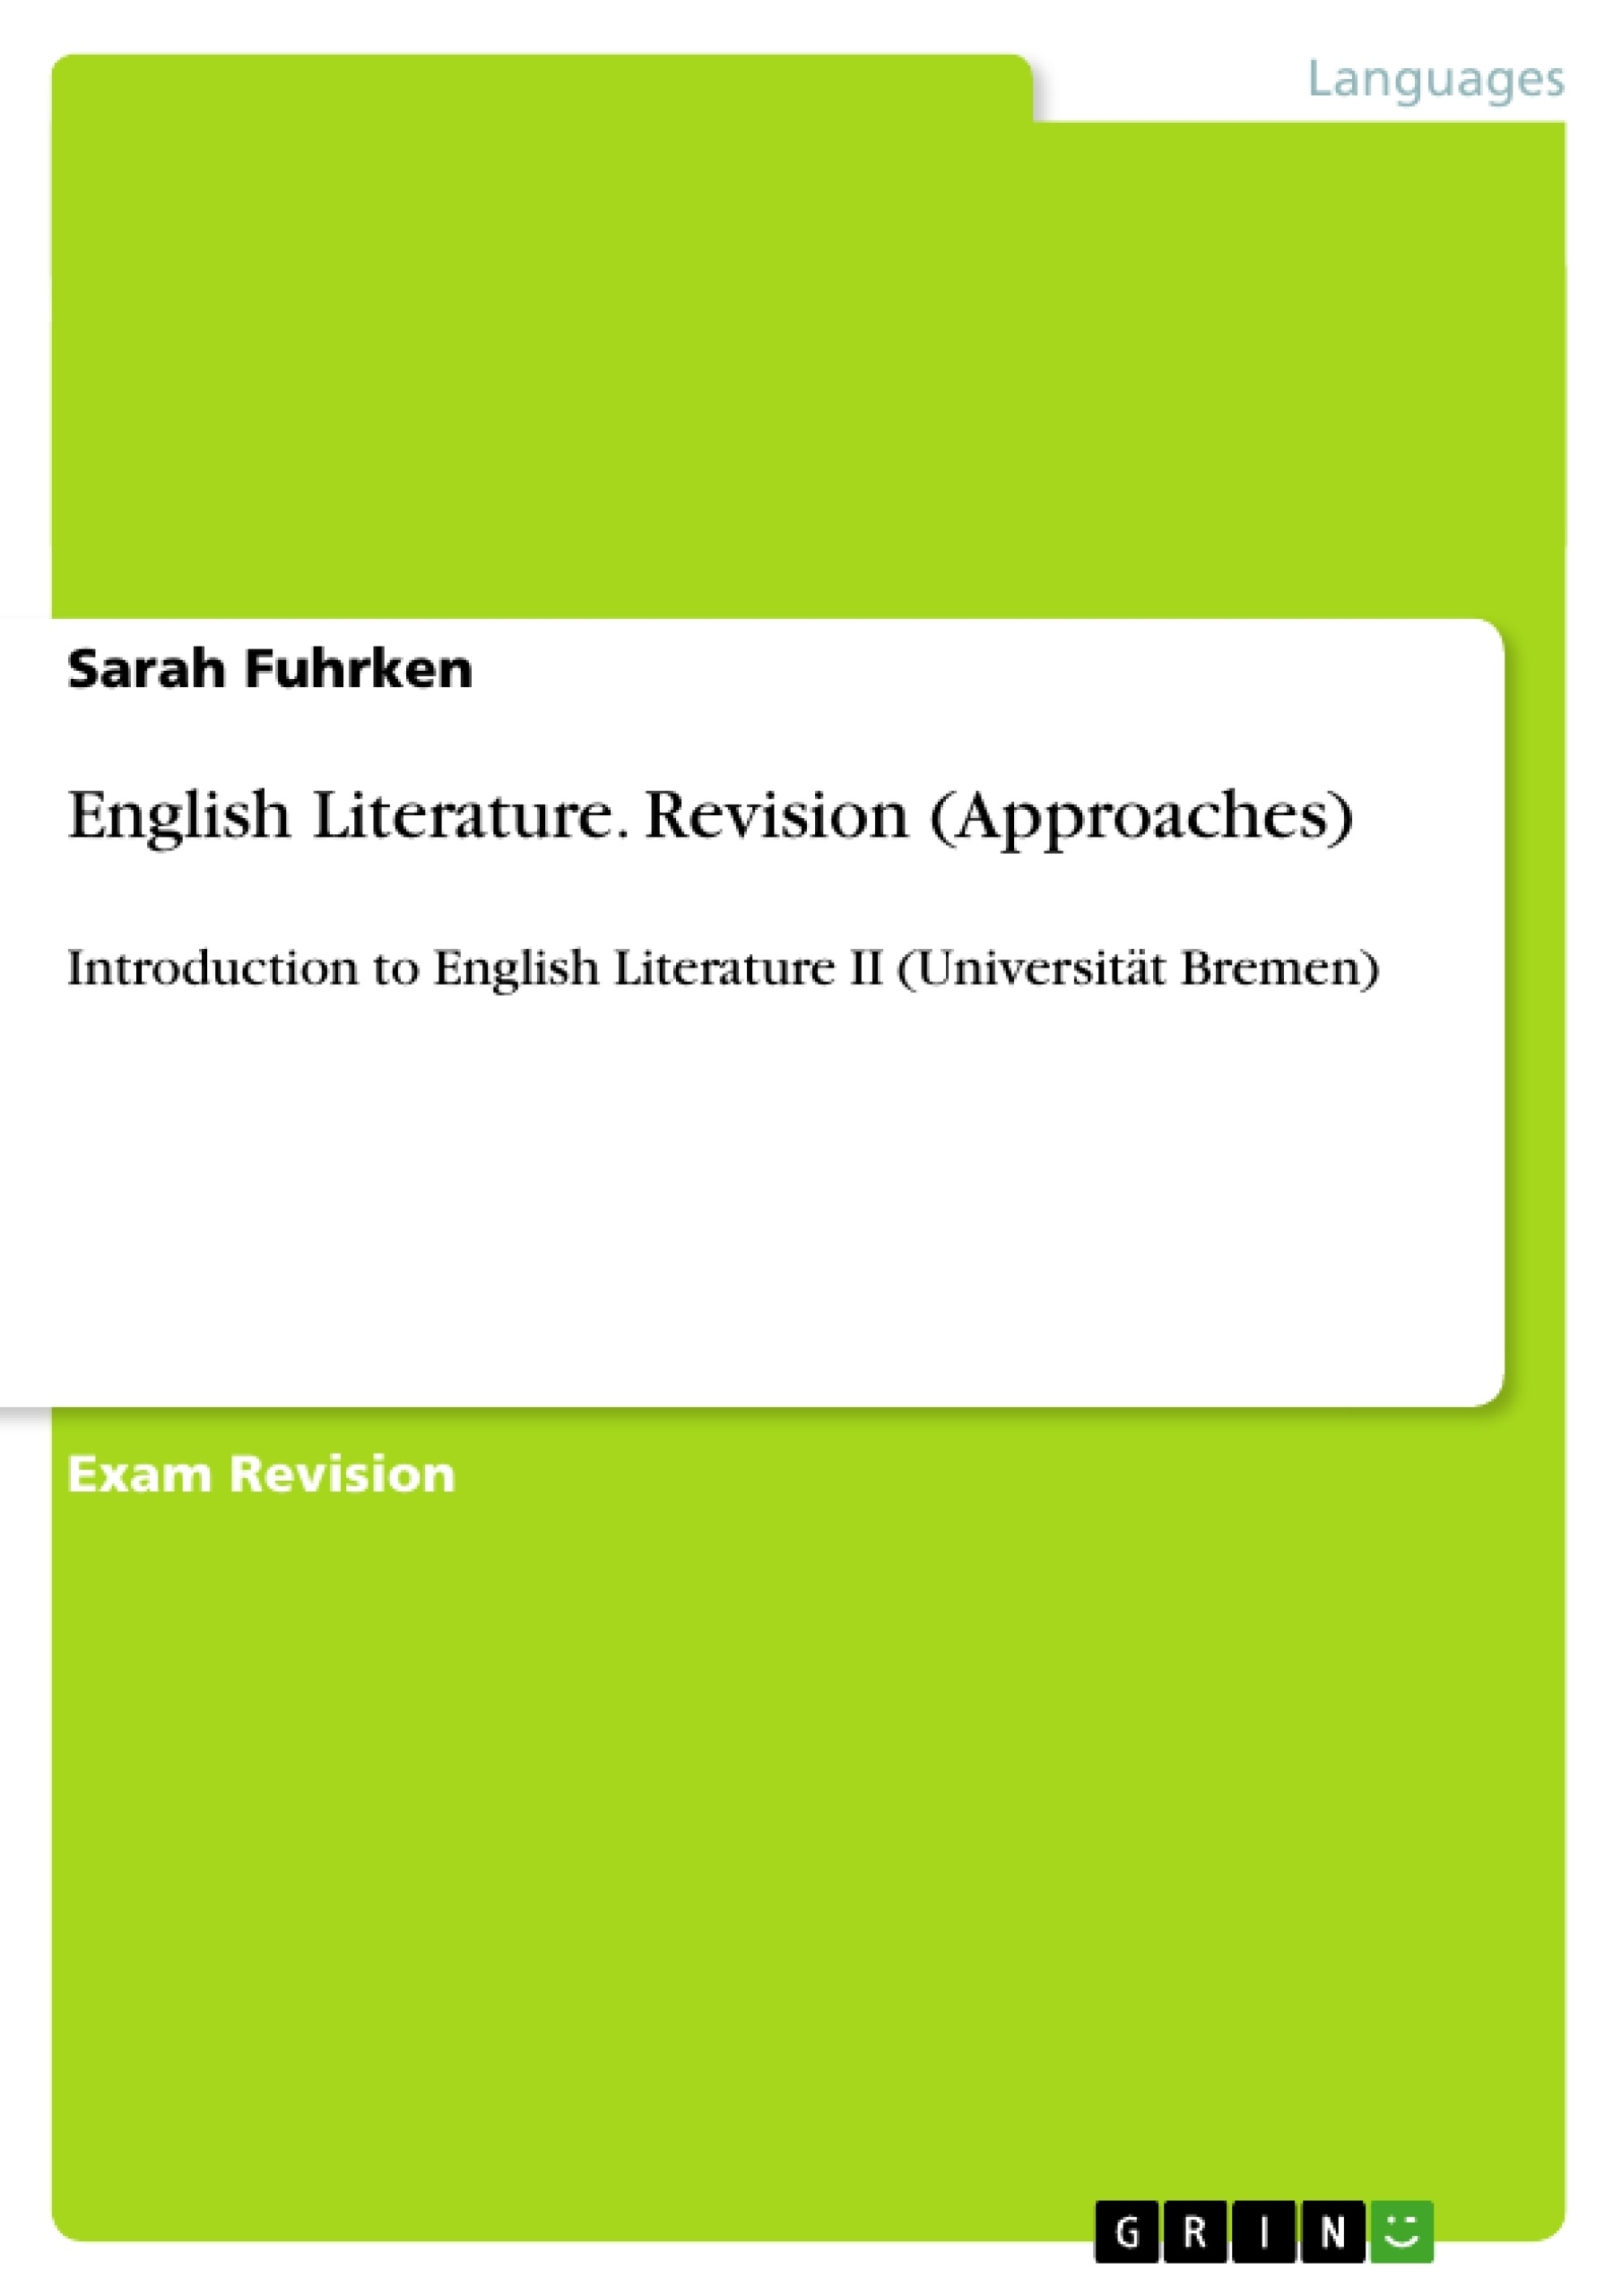 Title: English Literature. Revision (Approaches)